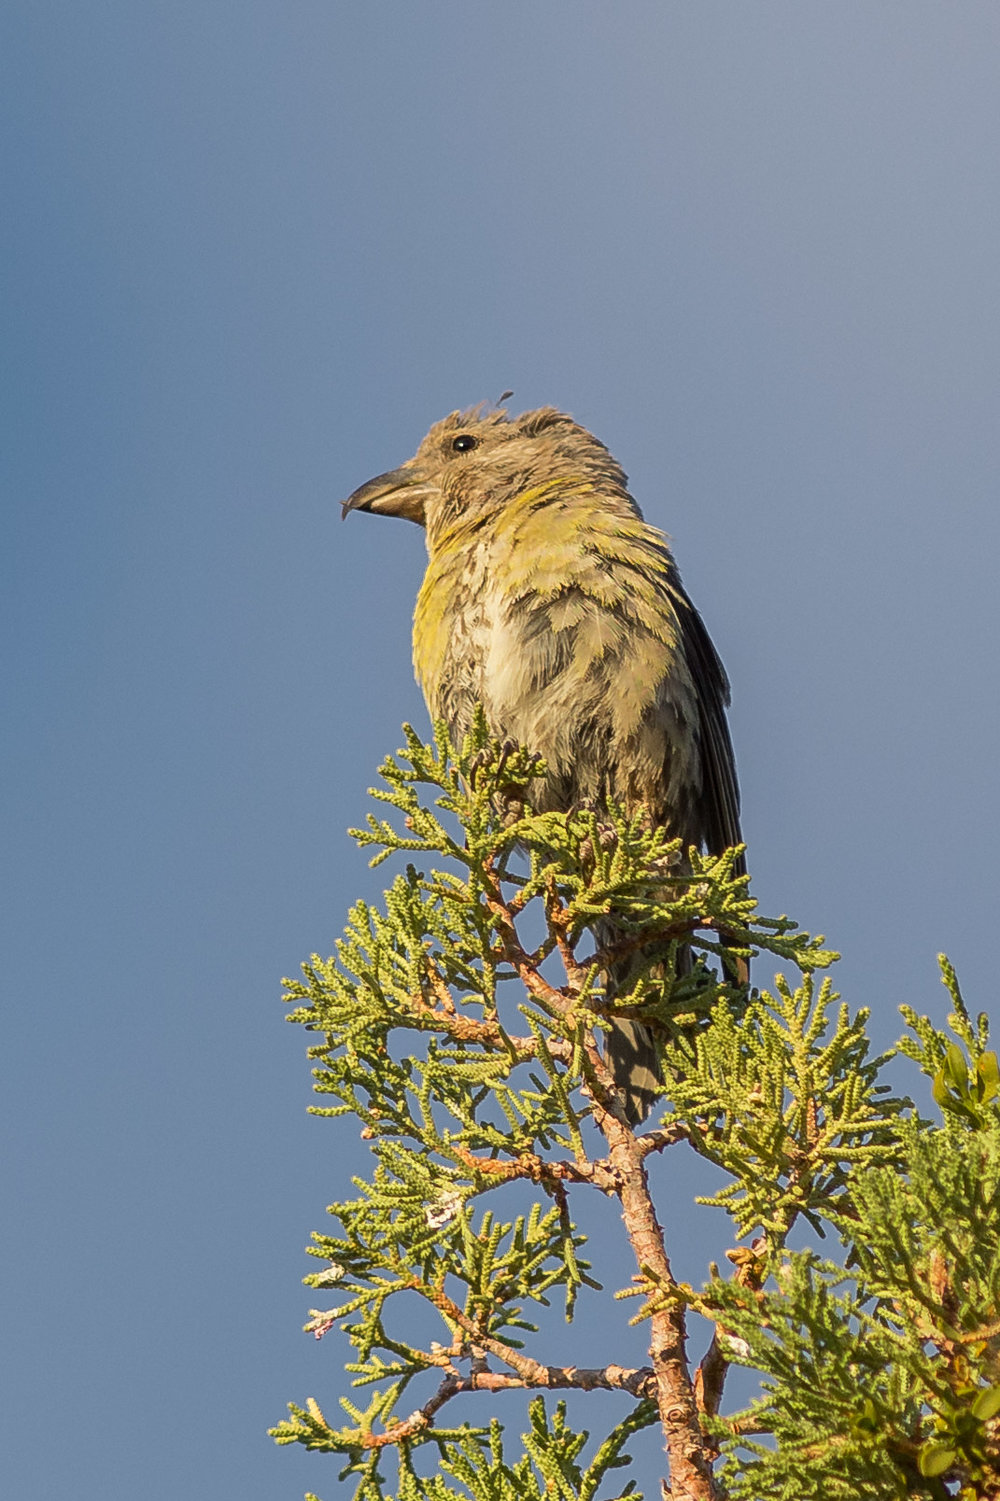 Red Crossbill, female (Loxia curvirostra) - Lava Beds NM, Siskiyou Co. (CA)  EQ: D7200, 300mm f/2.8   Taken: 10-2-2016 at 7:43   Settings: 450 mm (35mm eqiv), 1/1000s, f/3.5, ISO220, +1/3EV         Conditions: Sunny